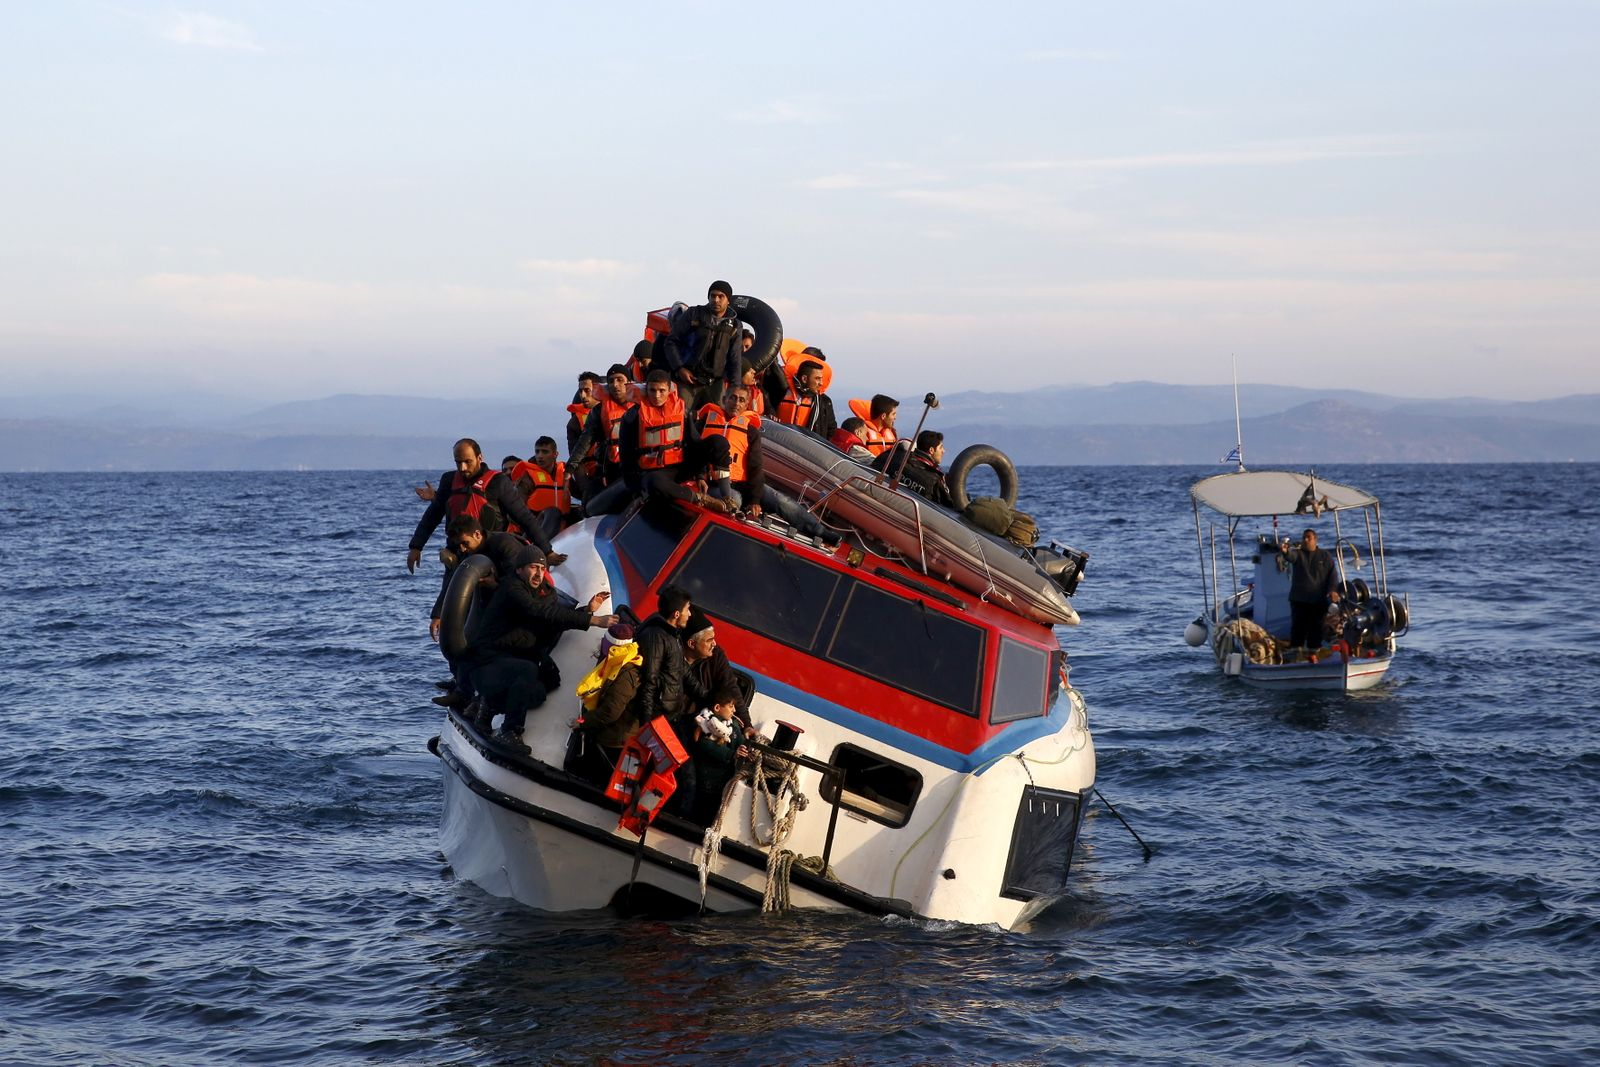 A Greek fishing boat sails next to a half-sunken catamaran carrying around 150 refugees, most of them Syrians arriving after crossing part of the Aegean sea from Turkey, on the Greek island of Lesbos